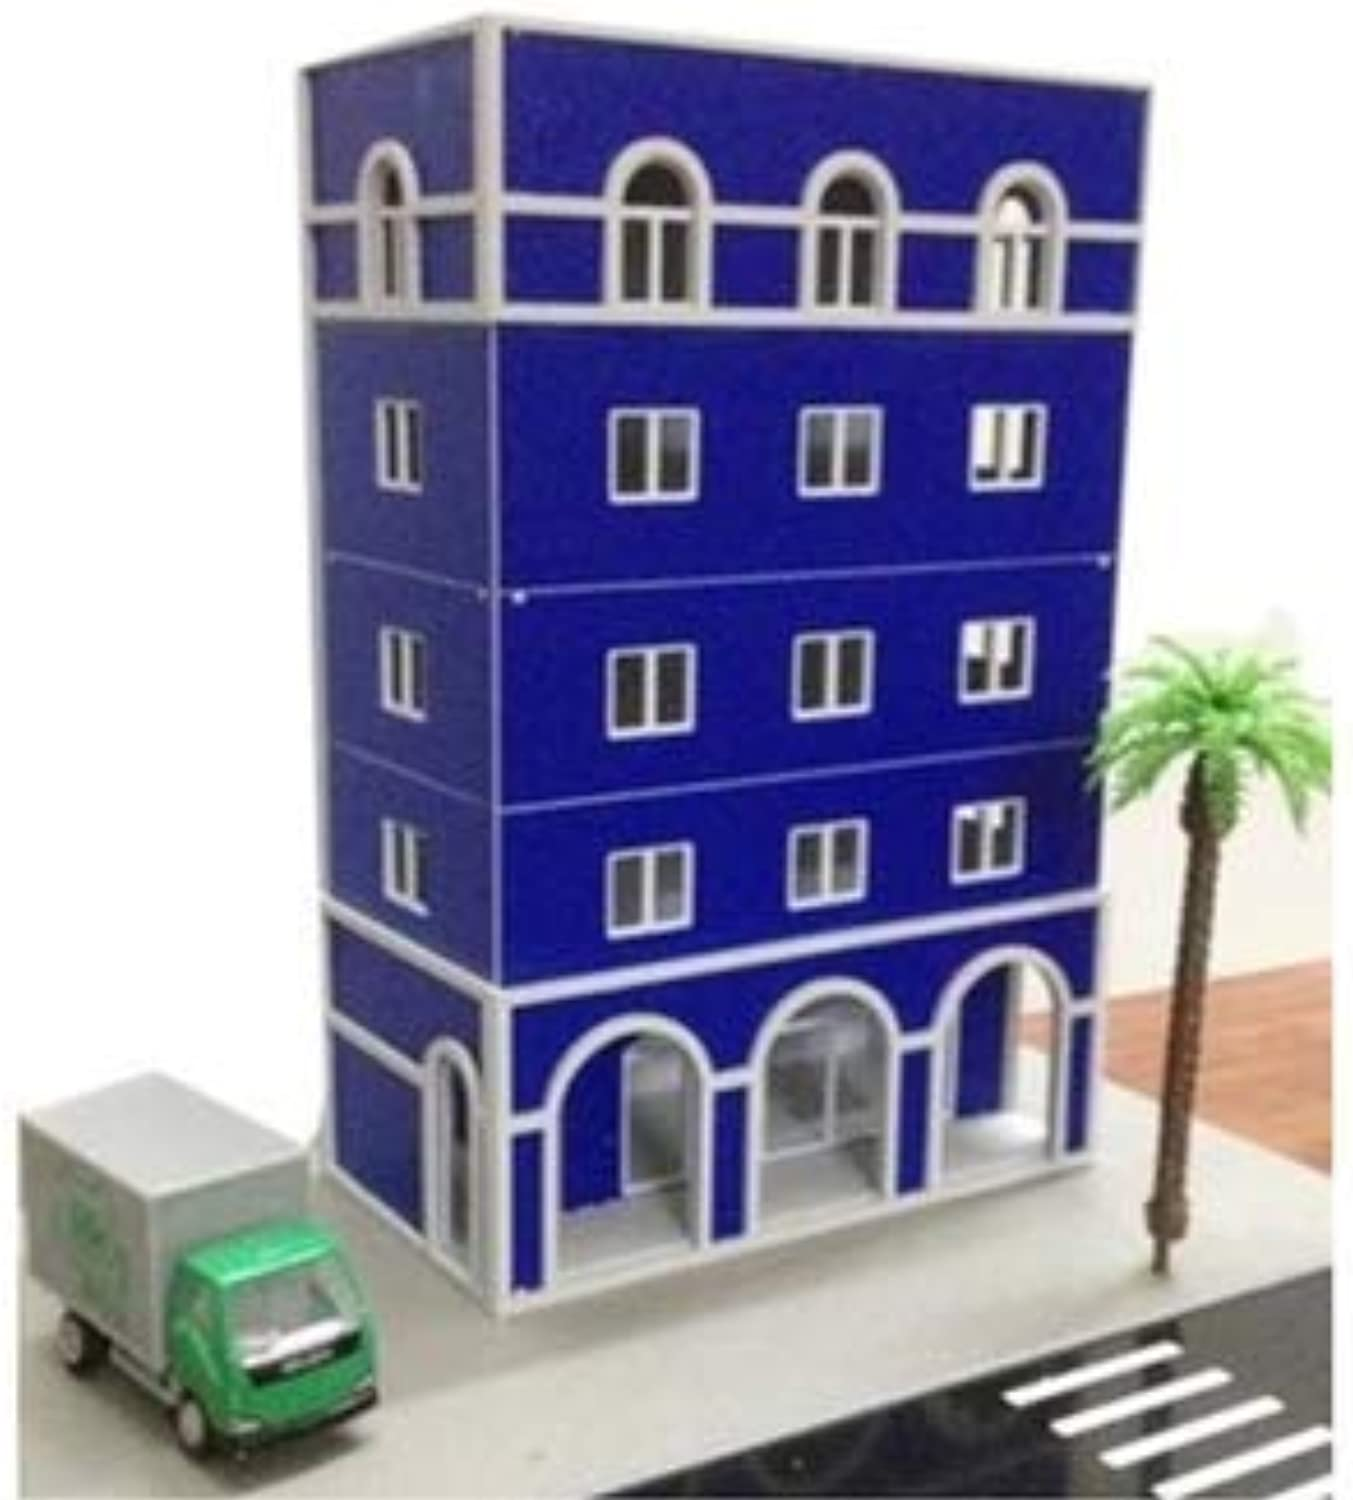 Dolls & Stuffed Toys & Miniature  1 87 HO Railway blueee Buildings Outland Models for Building